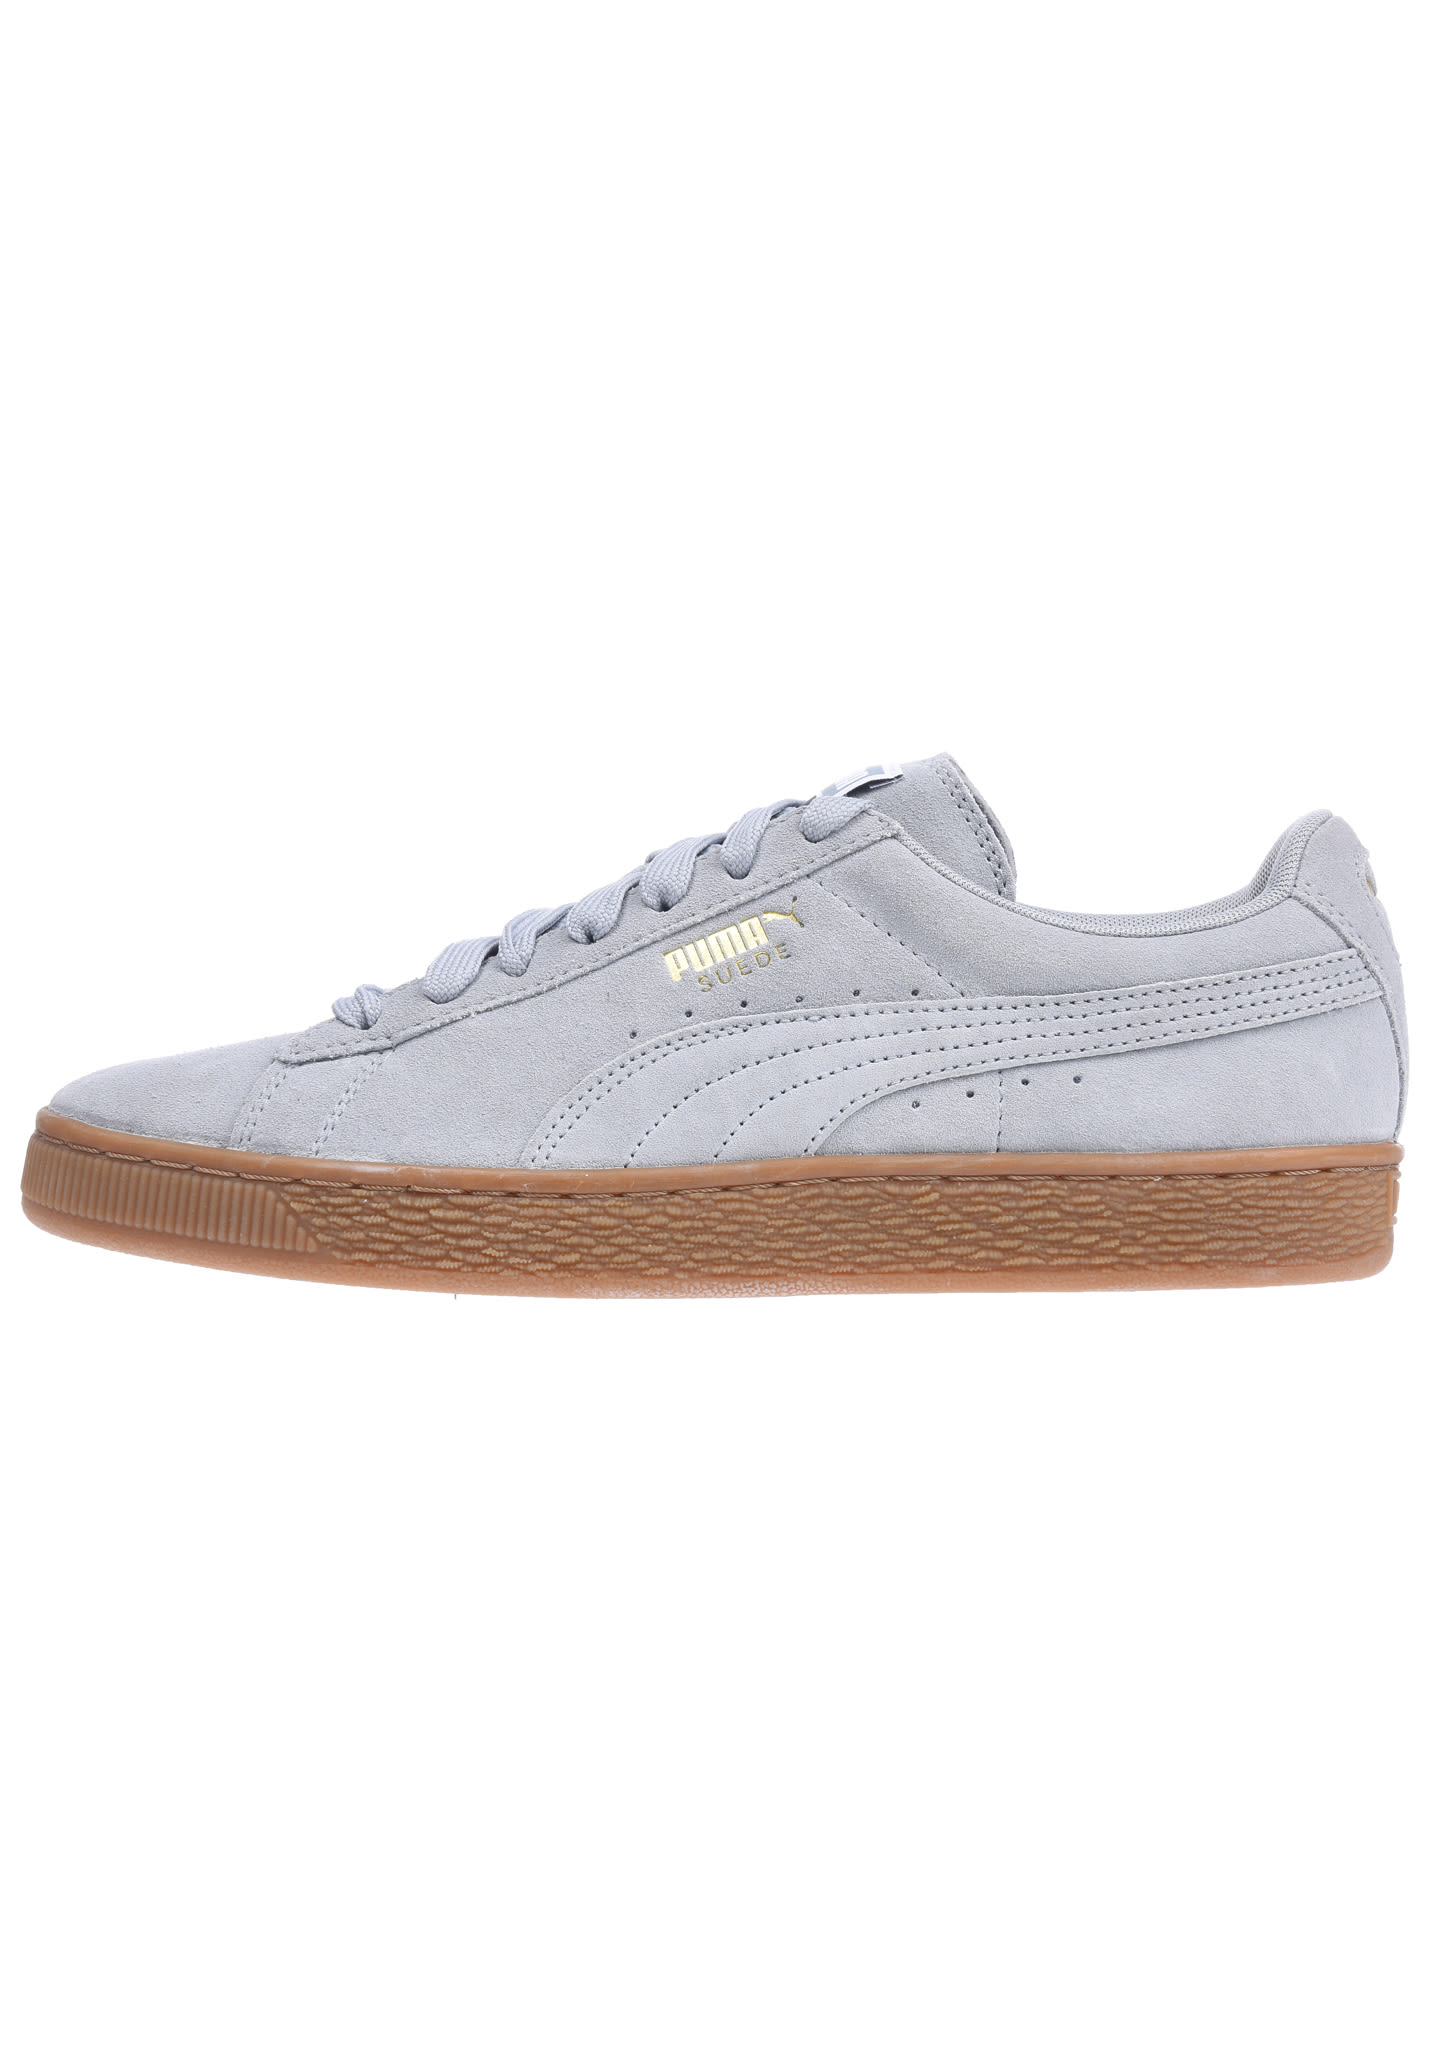 ab7f73a8e7a Puma Suede Classic Gum - Sneakers voor Heren - Blauw - Planet Sports